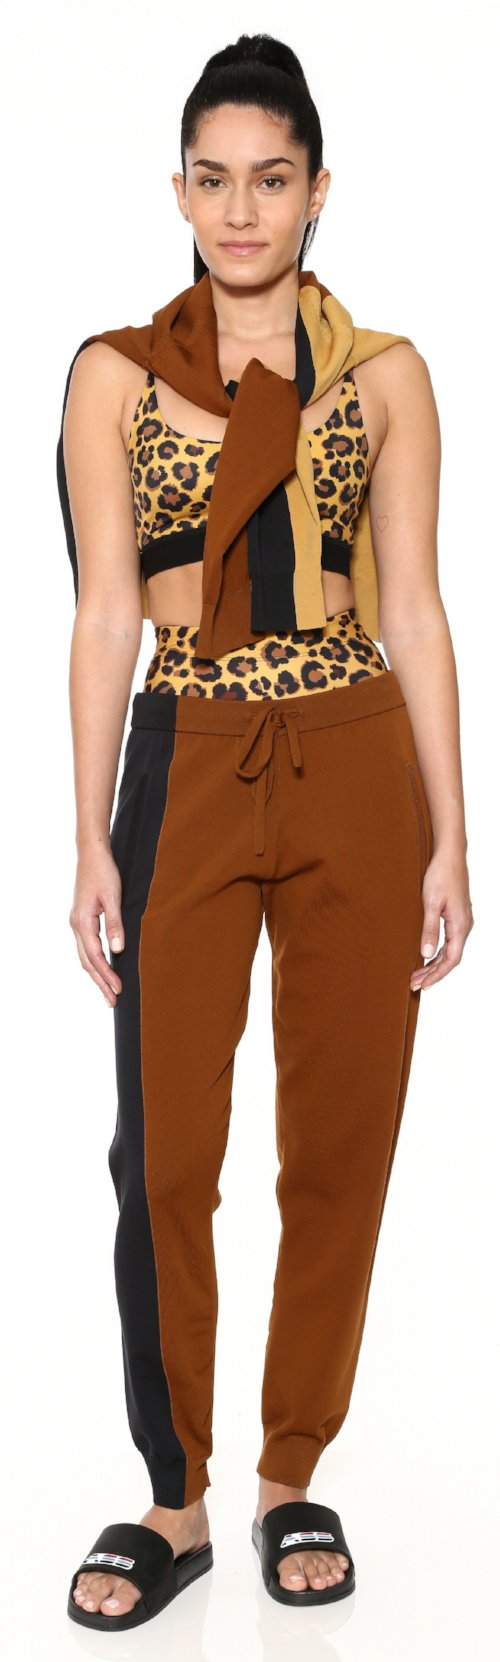 colorblock brown black sweatpant bottom knit adam selman workout work out clothes activewear